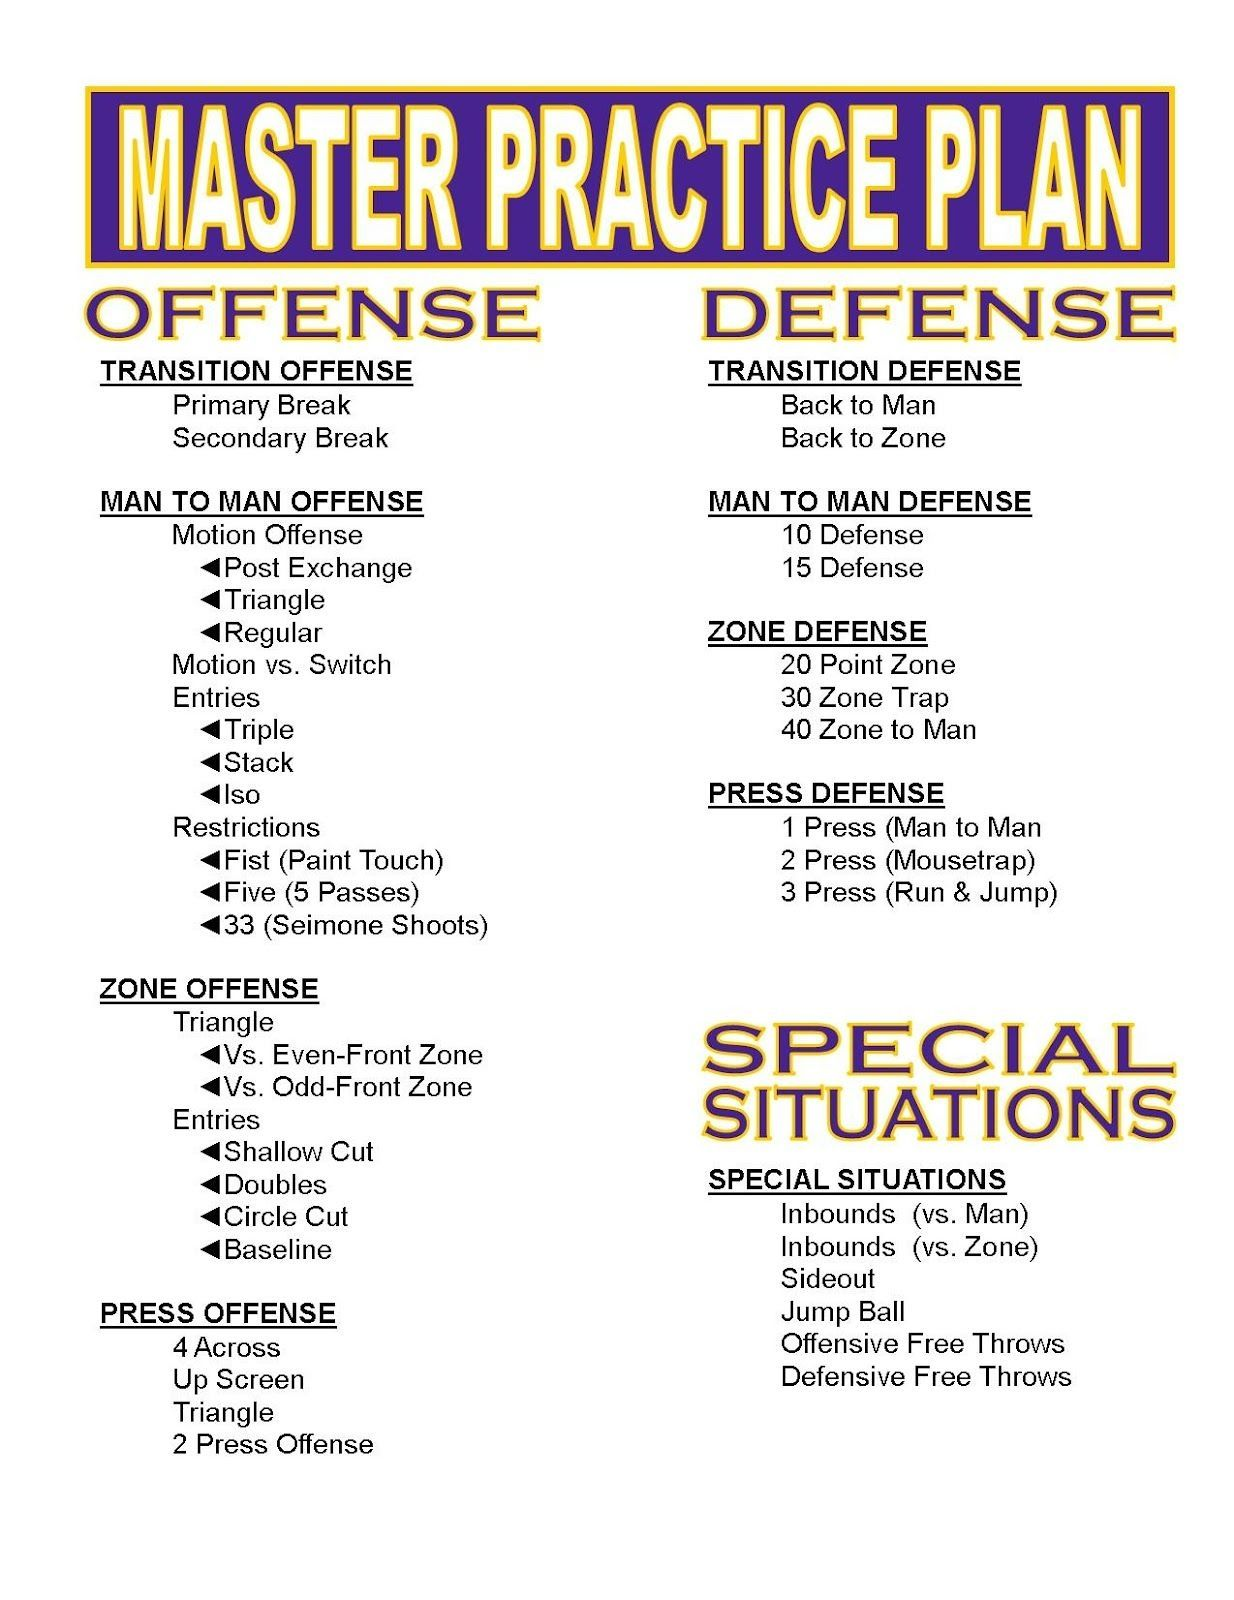 Hoop Thoughts Do You Have A Master Practice Plan